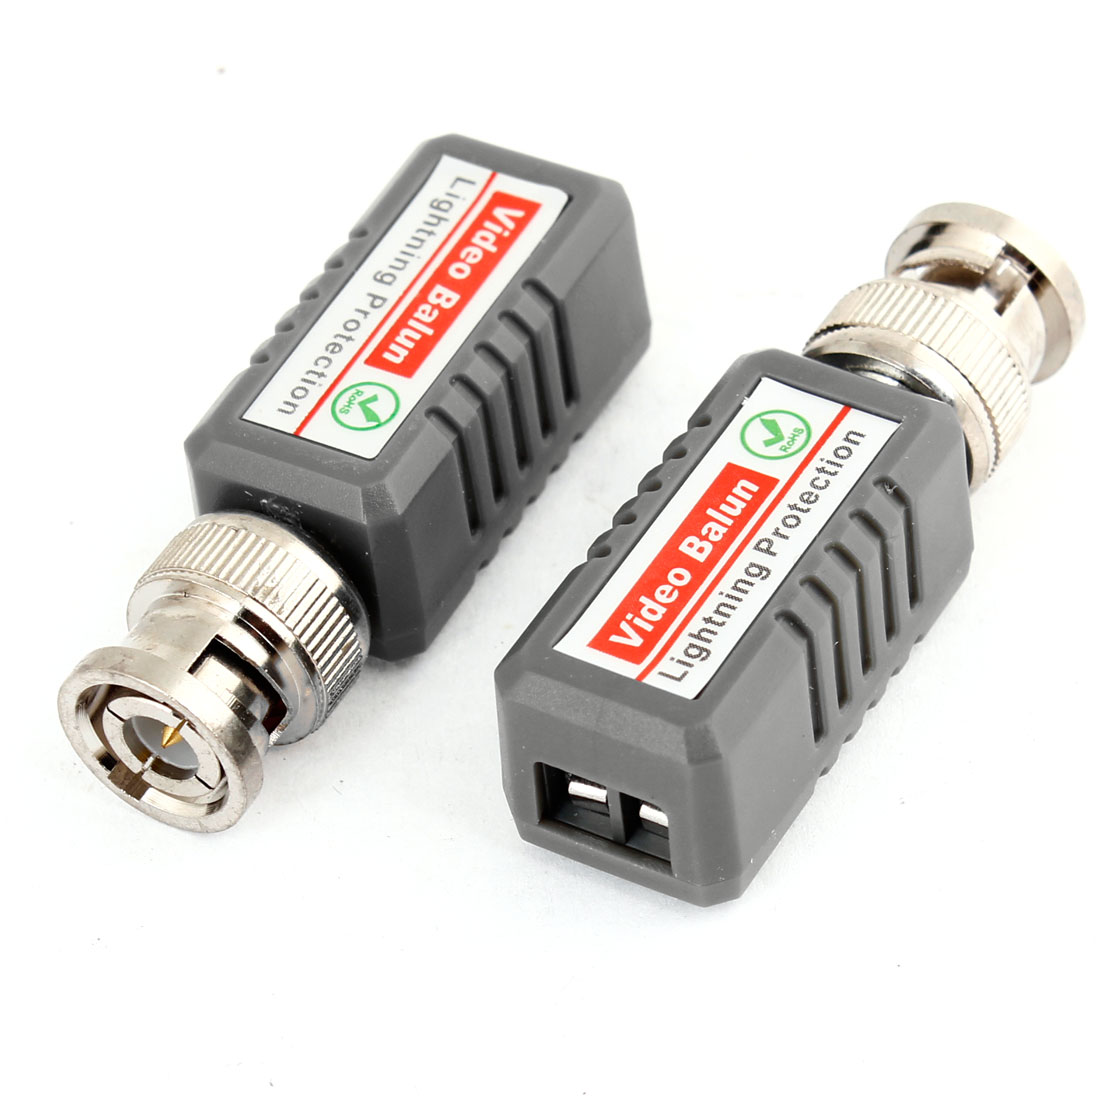 2 Pcs CCTV BNC Coaxial One Channel Passive Video Balun Transceiver